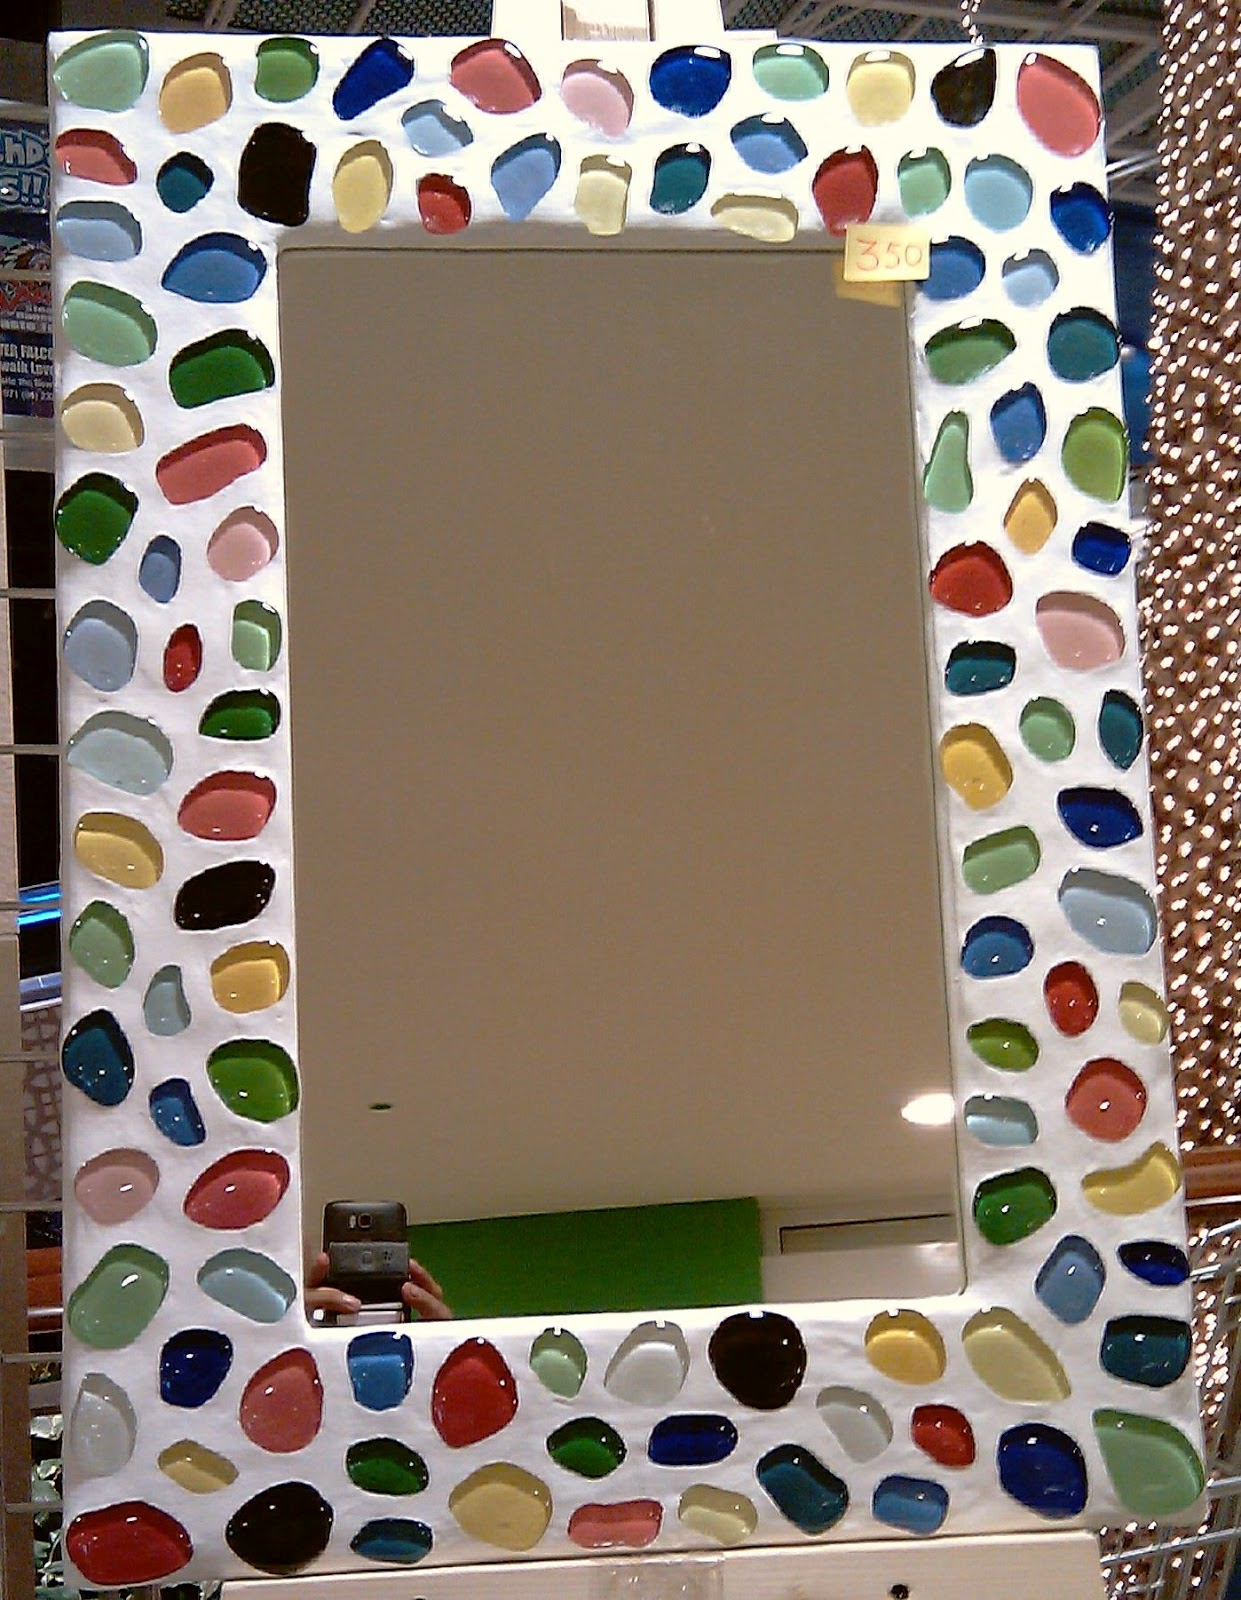 Wall Mirror Photo Frames Decorated With Gl Mosaic